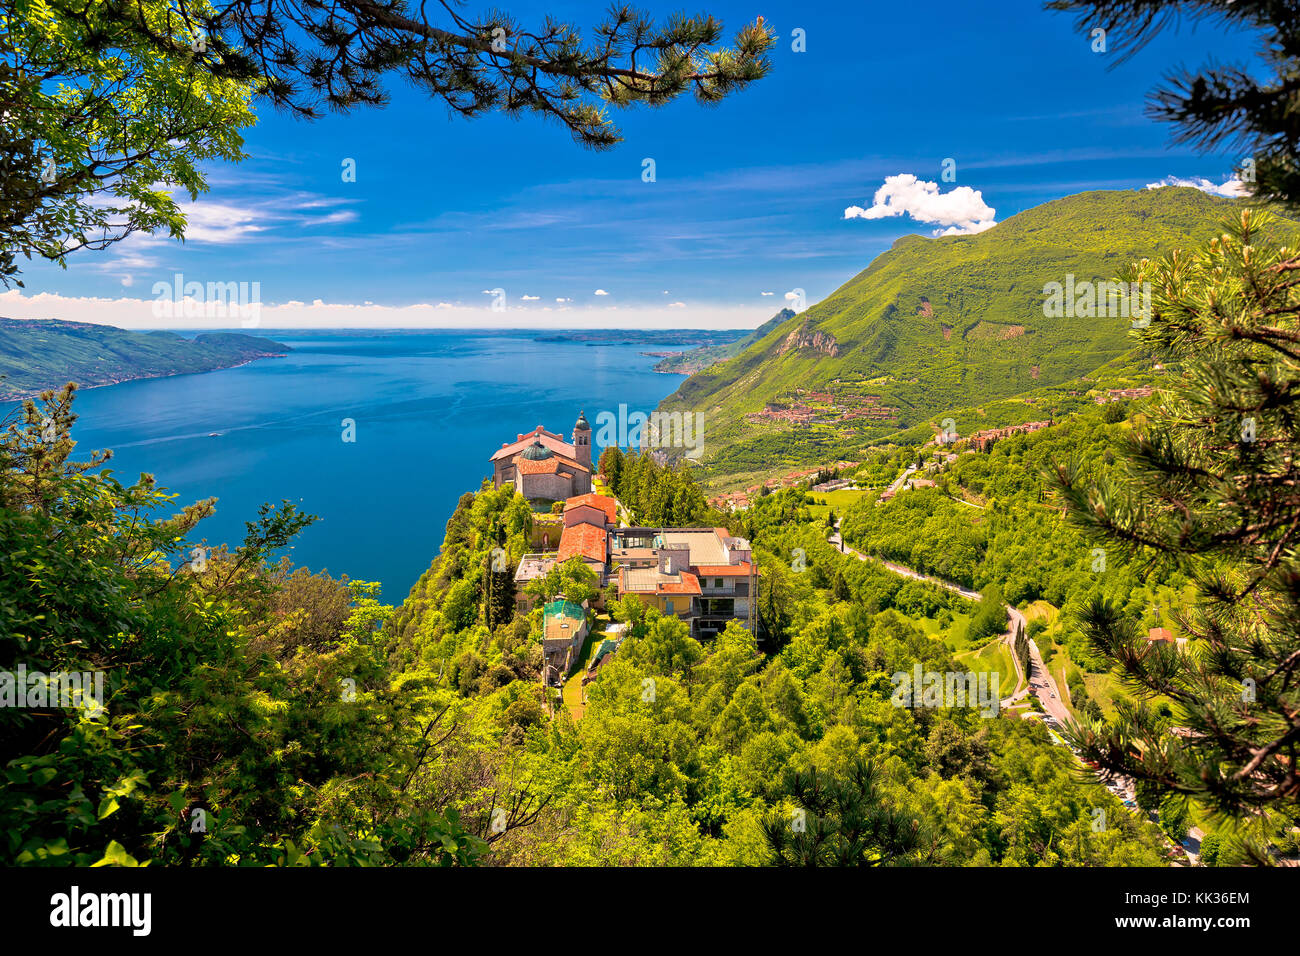 malcesine single women Lake garda holidays  don't miss a ride on the funicular from malcesine to the top of monte baldo for breathtaking views of the lake charming towns.